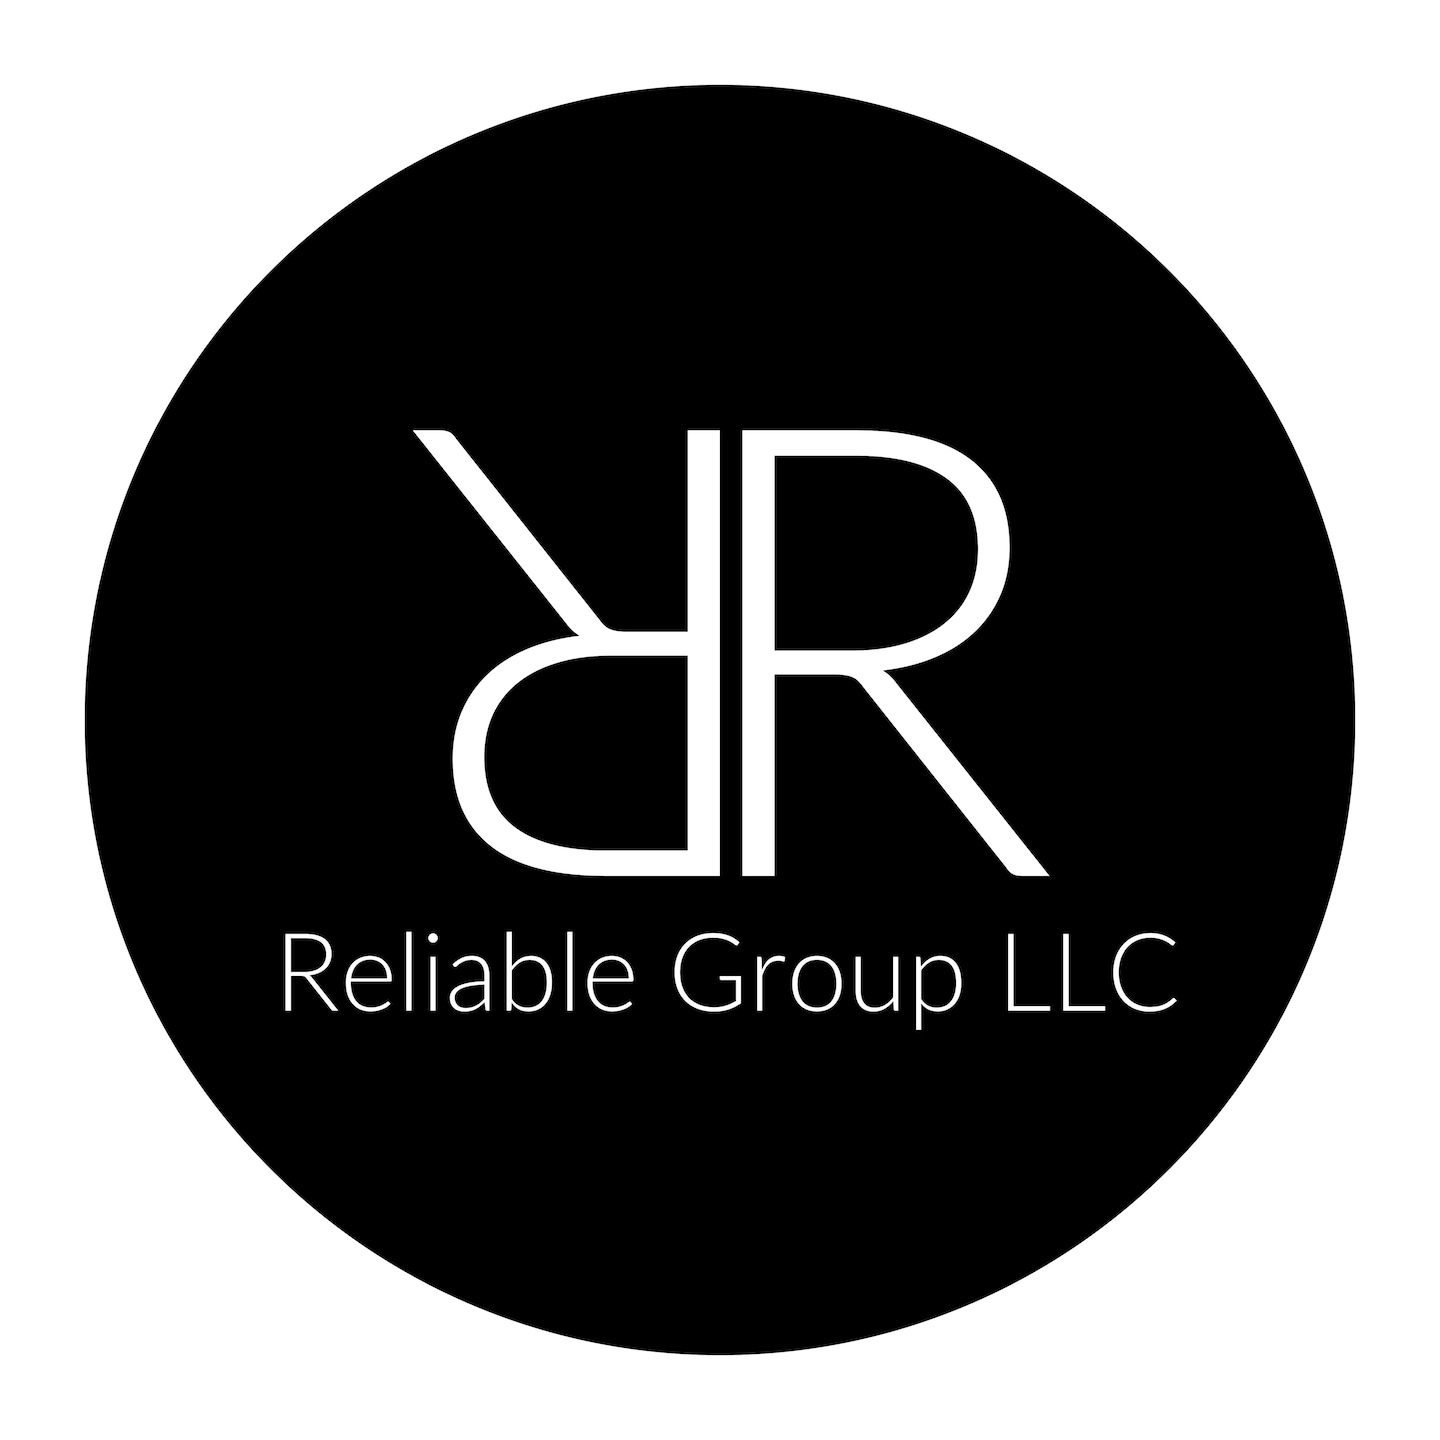 Reliable Group LLC